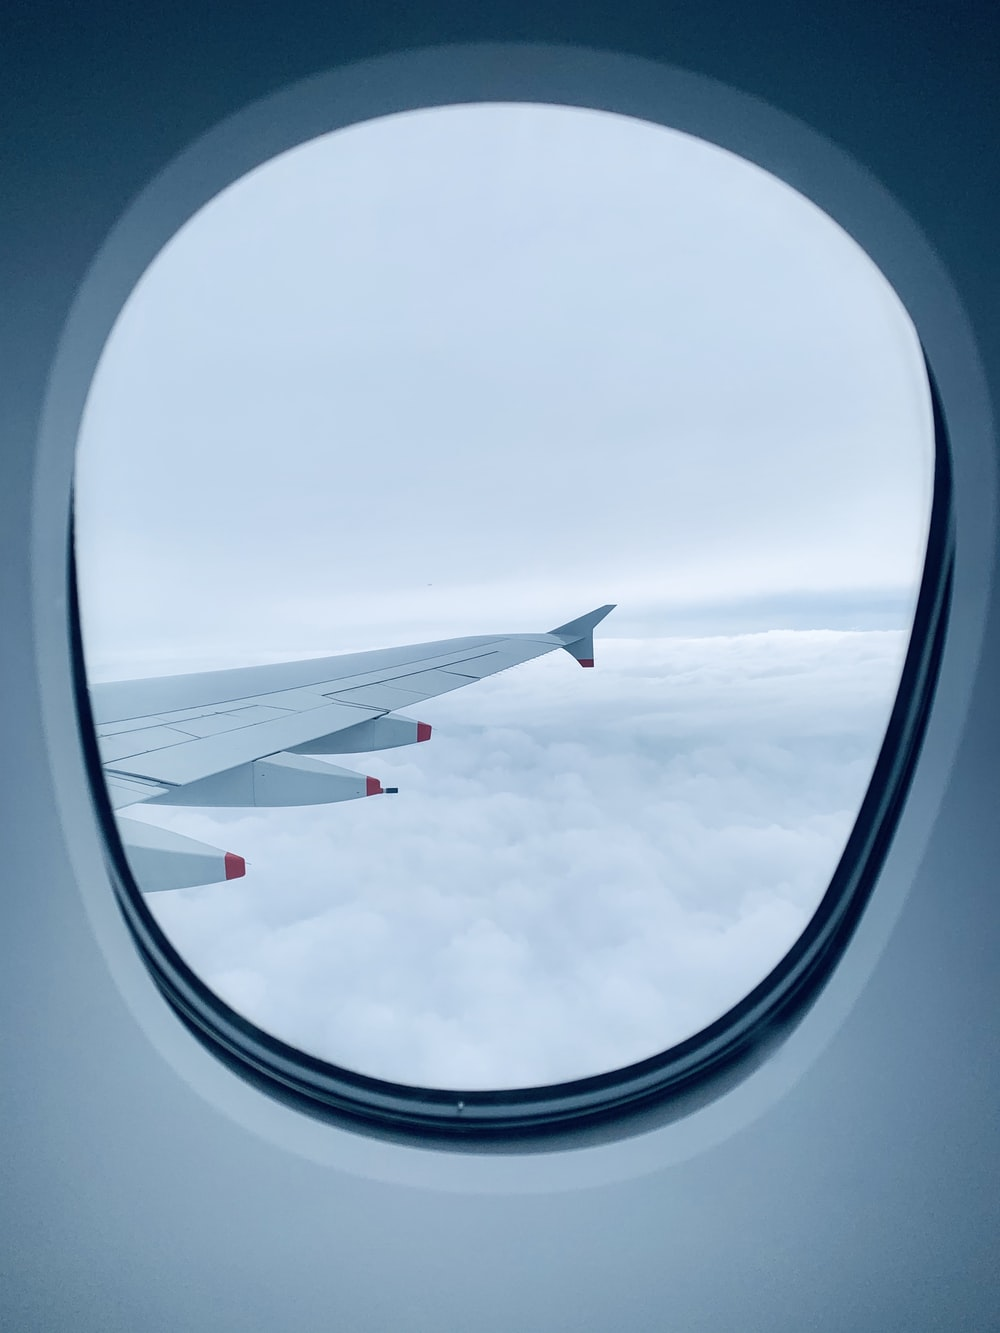 white airplane wing on air during daytime